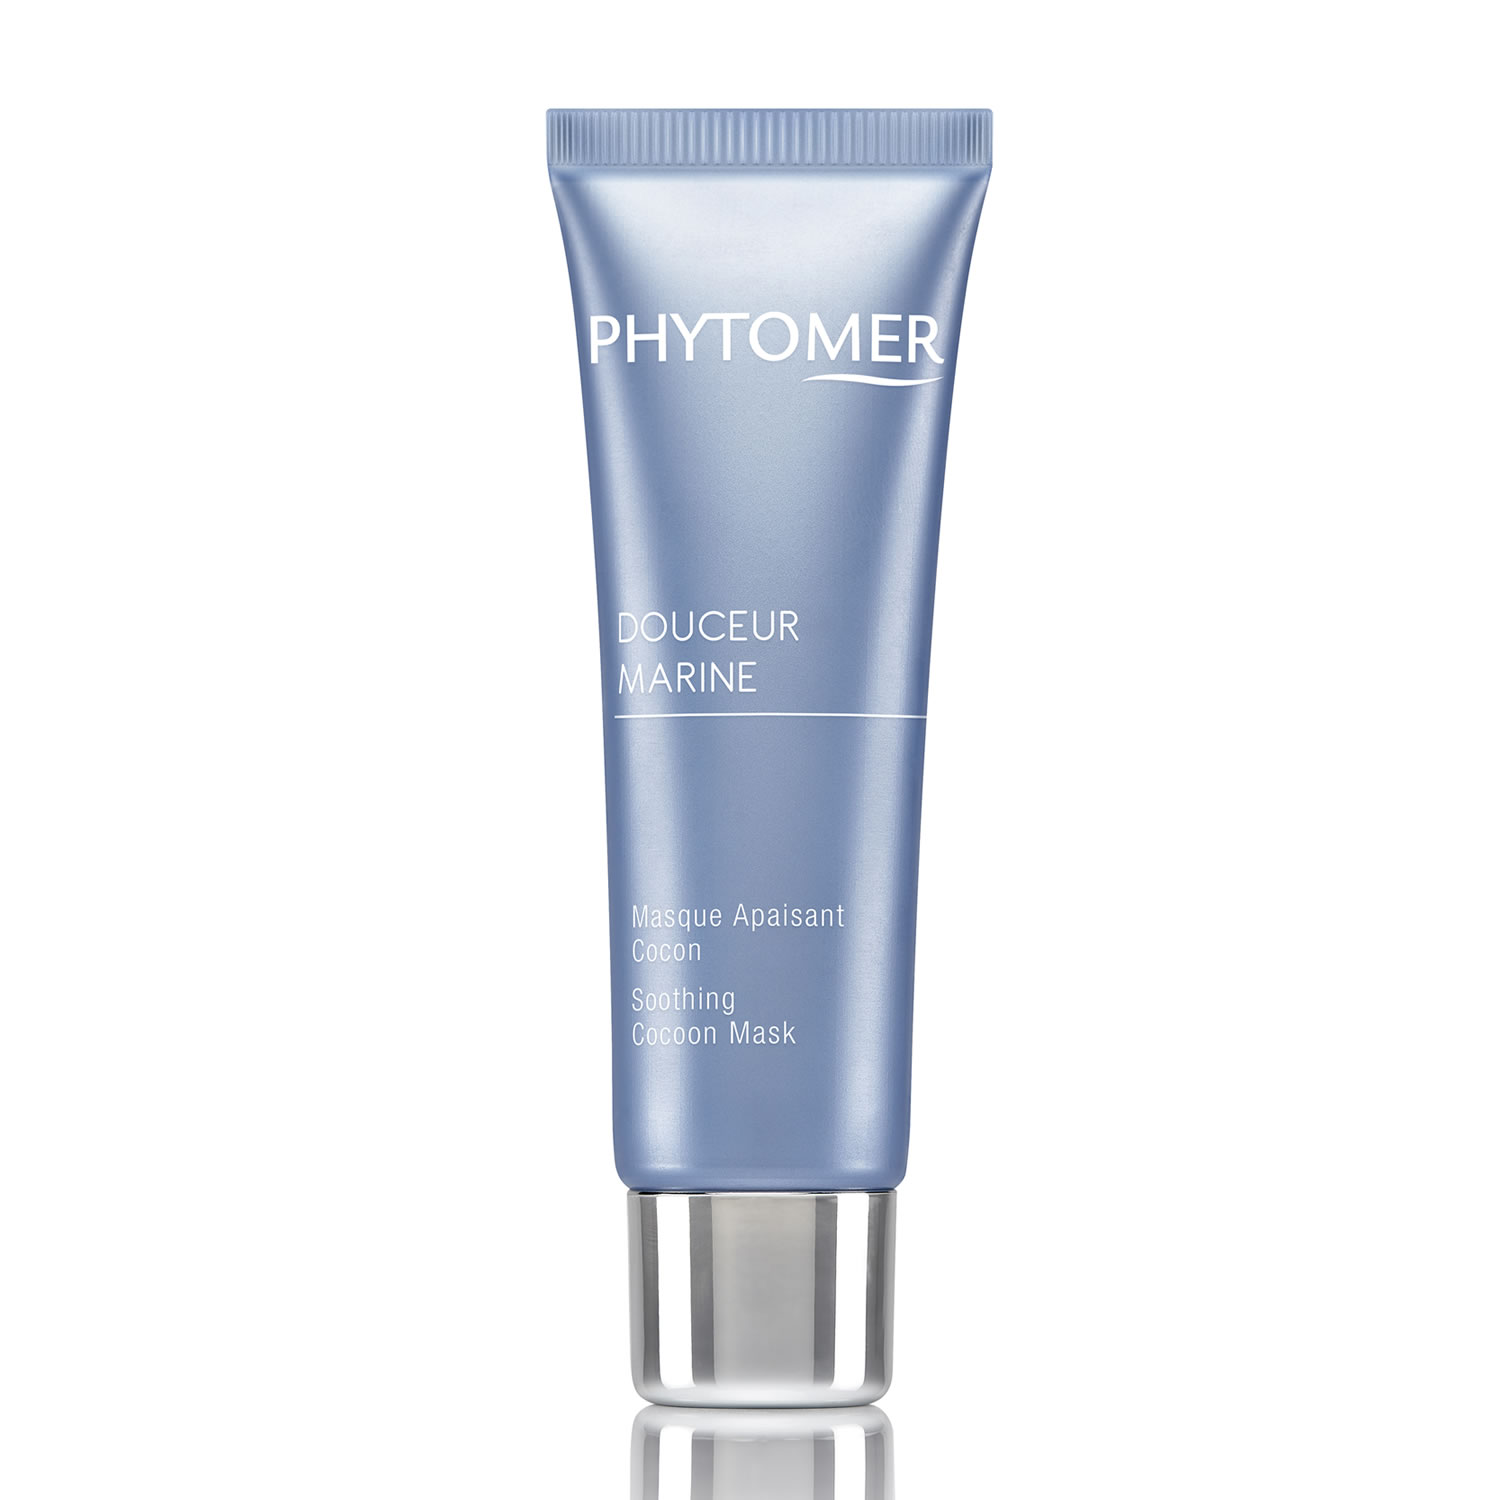 Phytomer DOUCEUR MARINE SOOTHING COCOON MASK (1.6 oz / 50 ml)